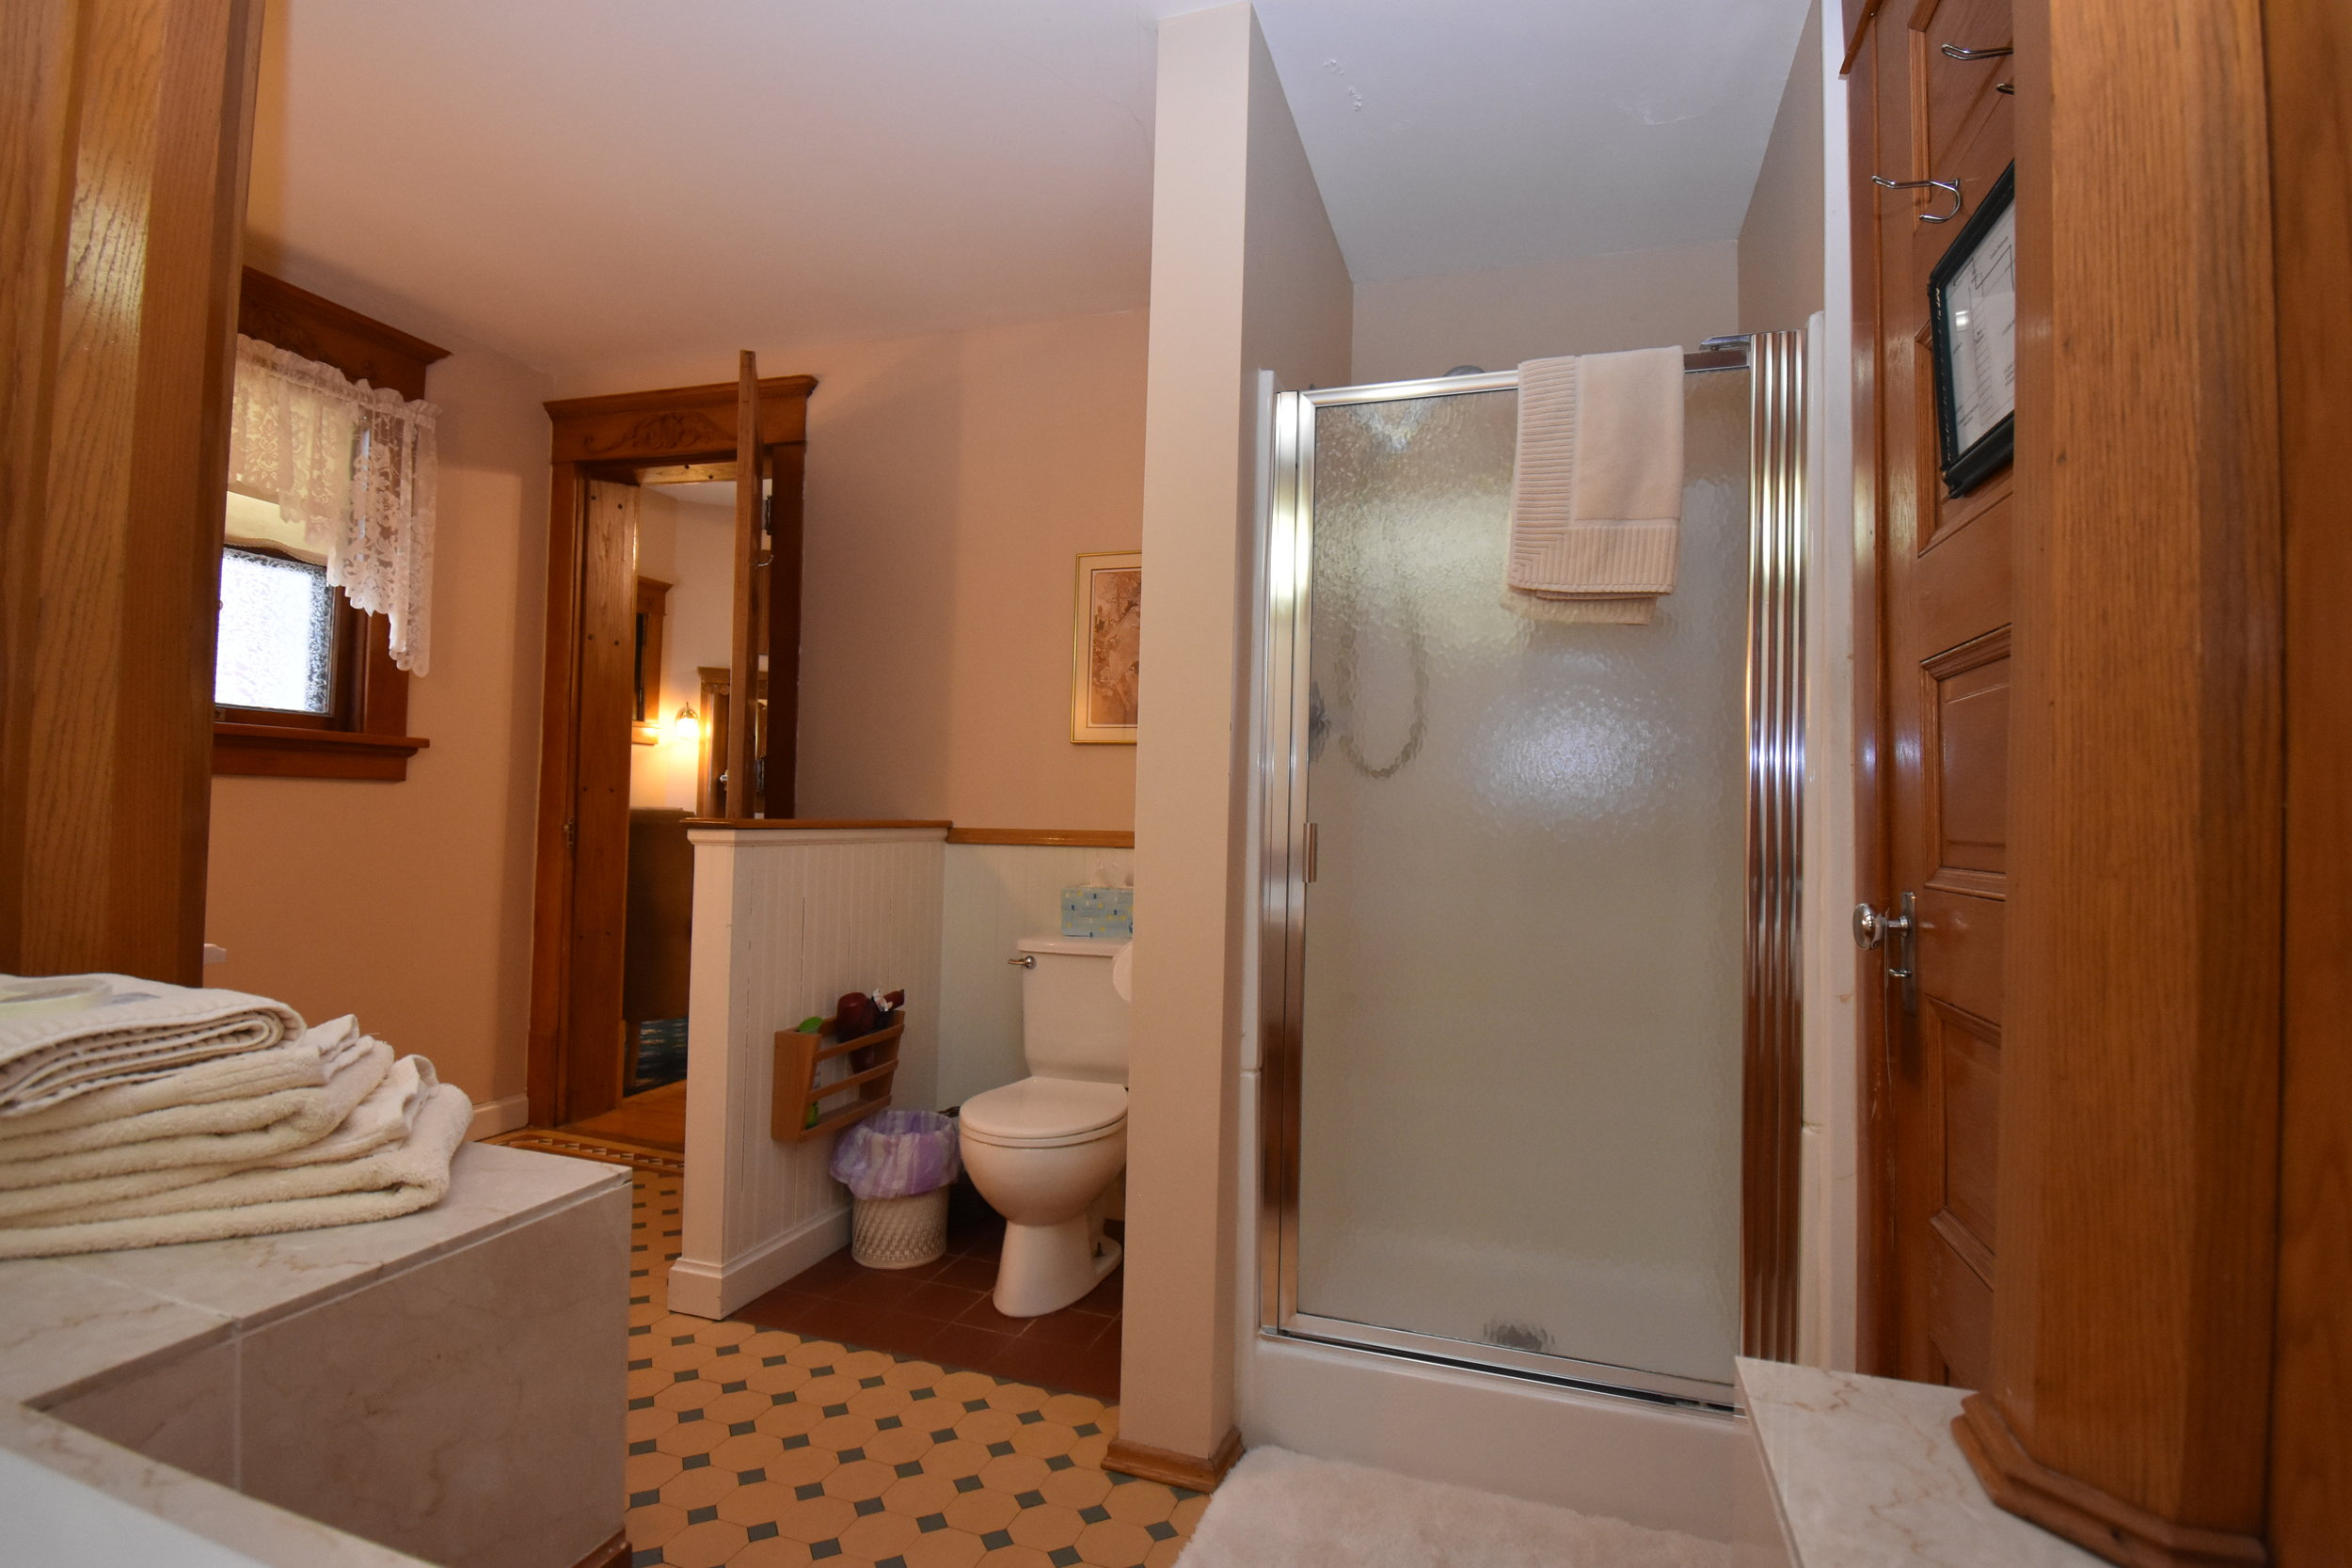 Private bathroom with separate shower